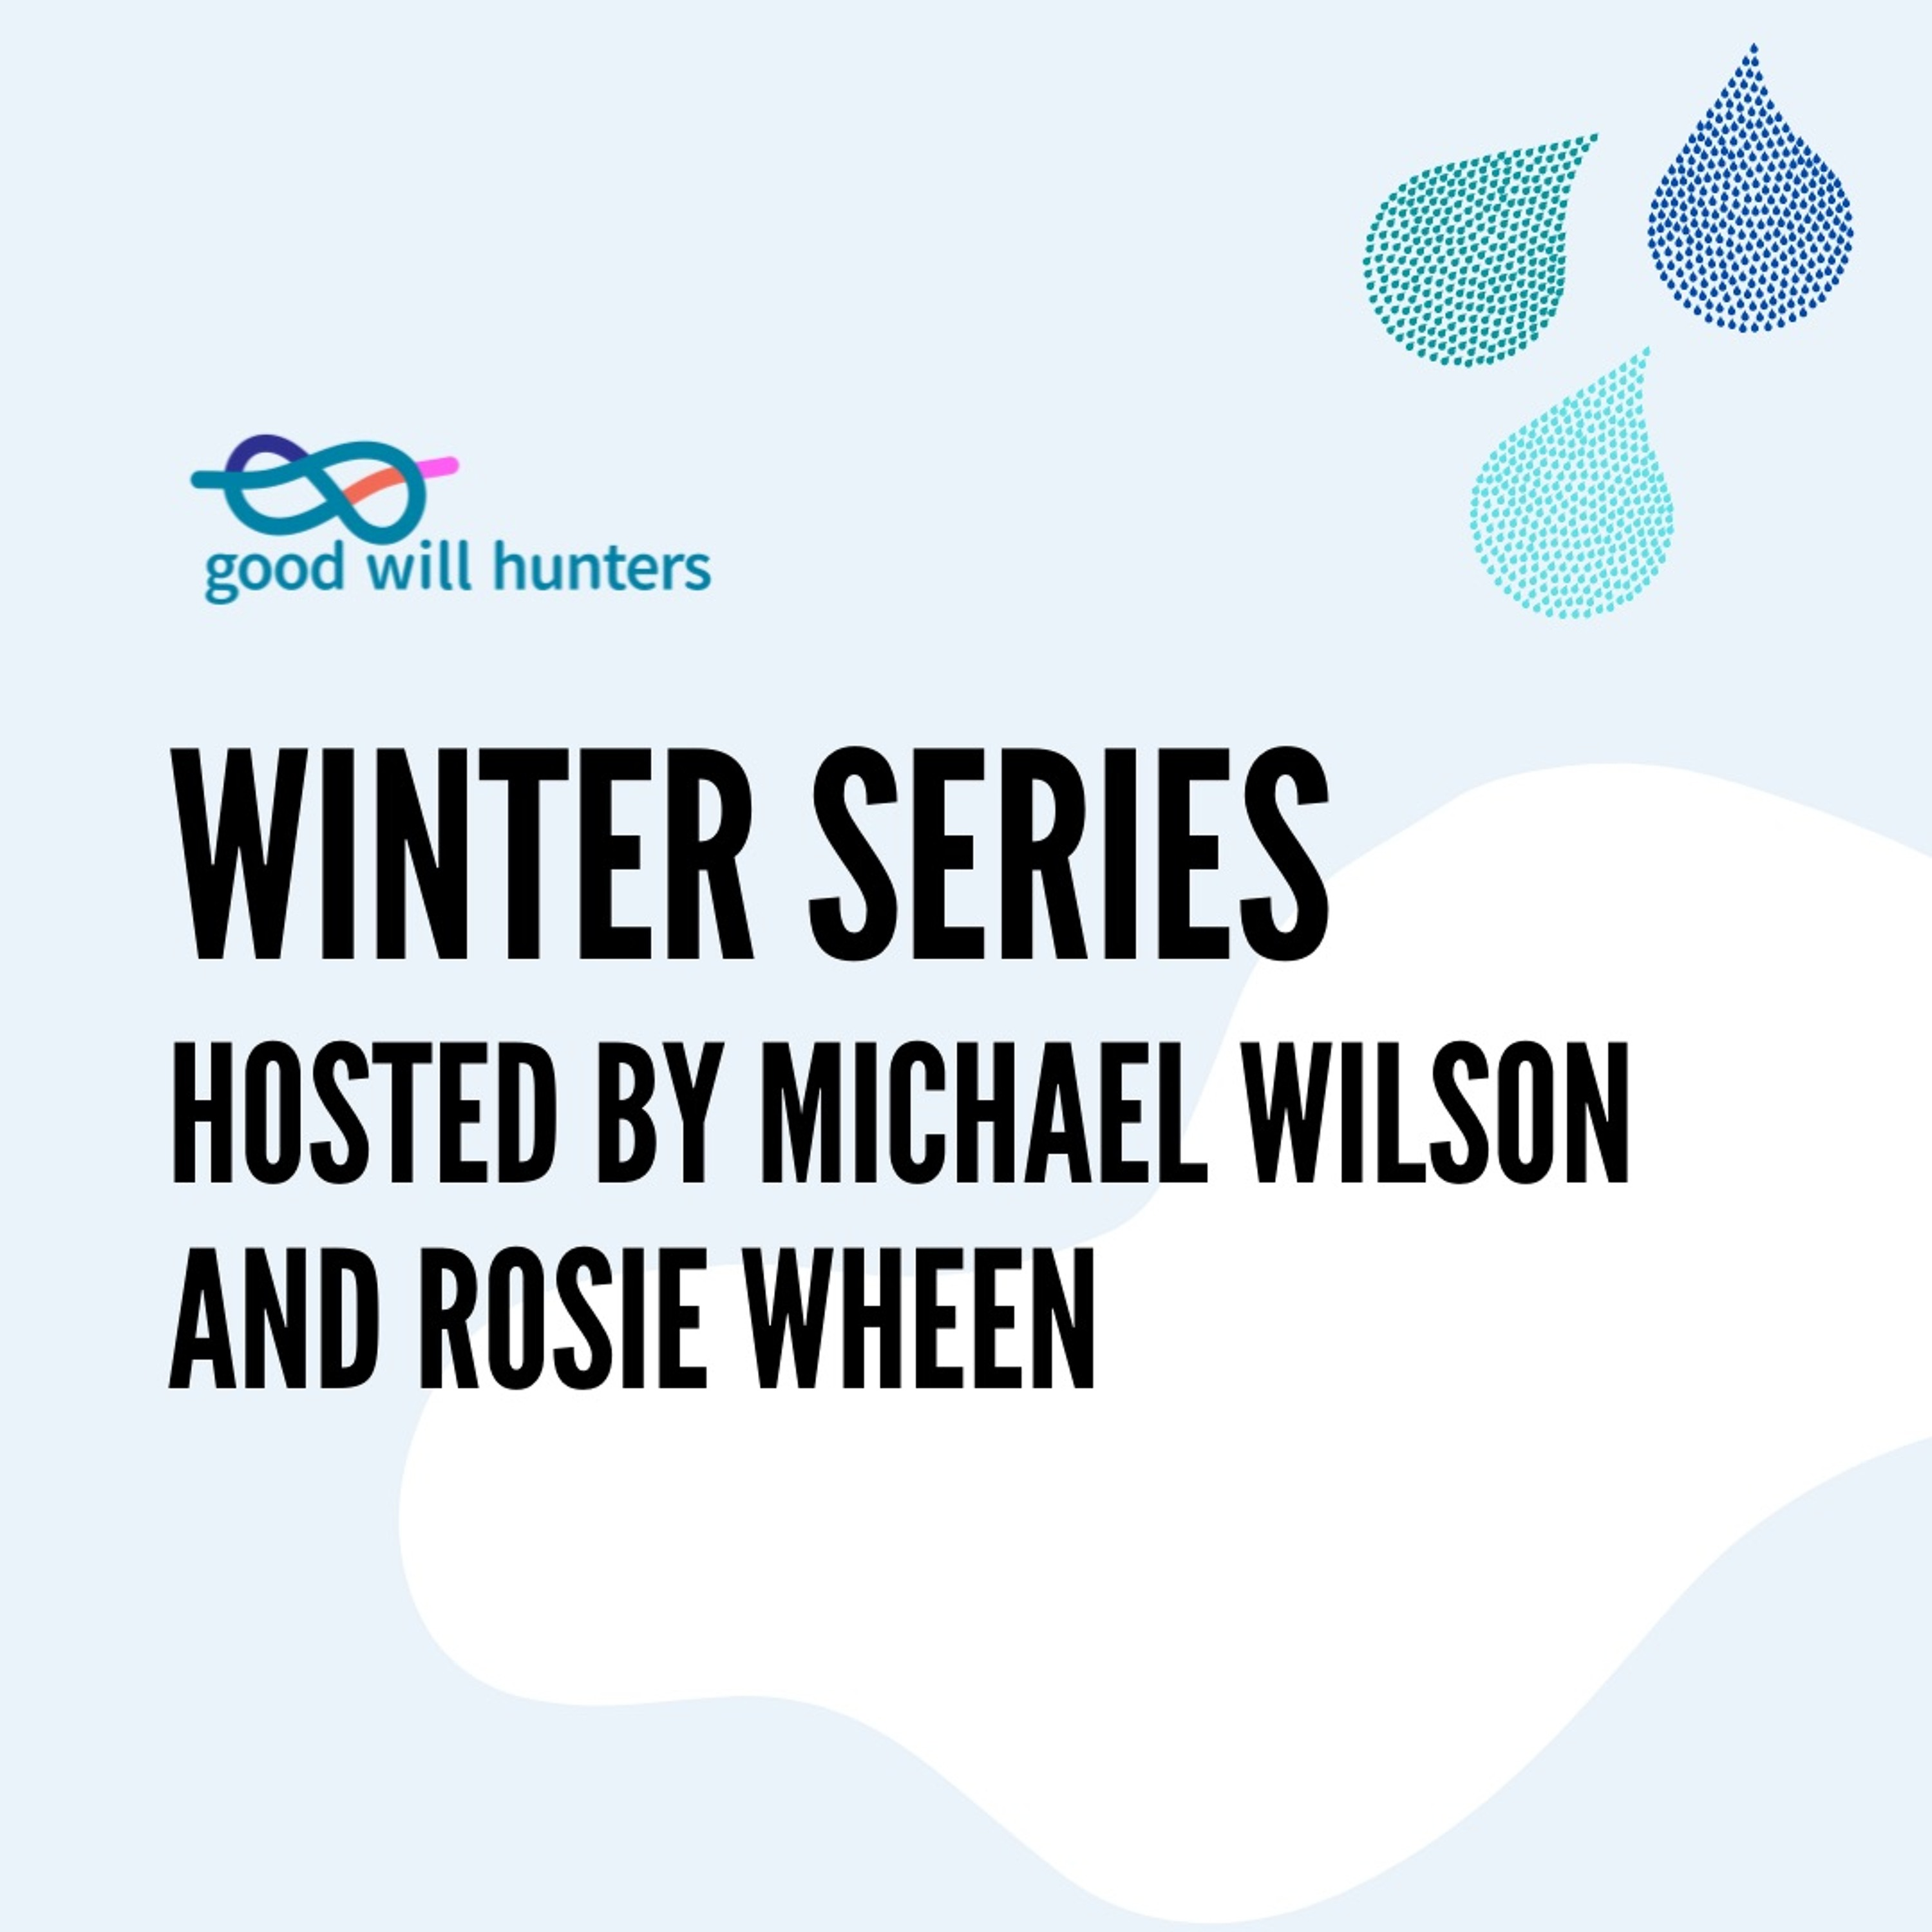 Promo: Launching our Winter Series with Michael Wilson and Rosie Wheen